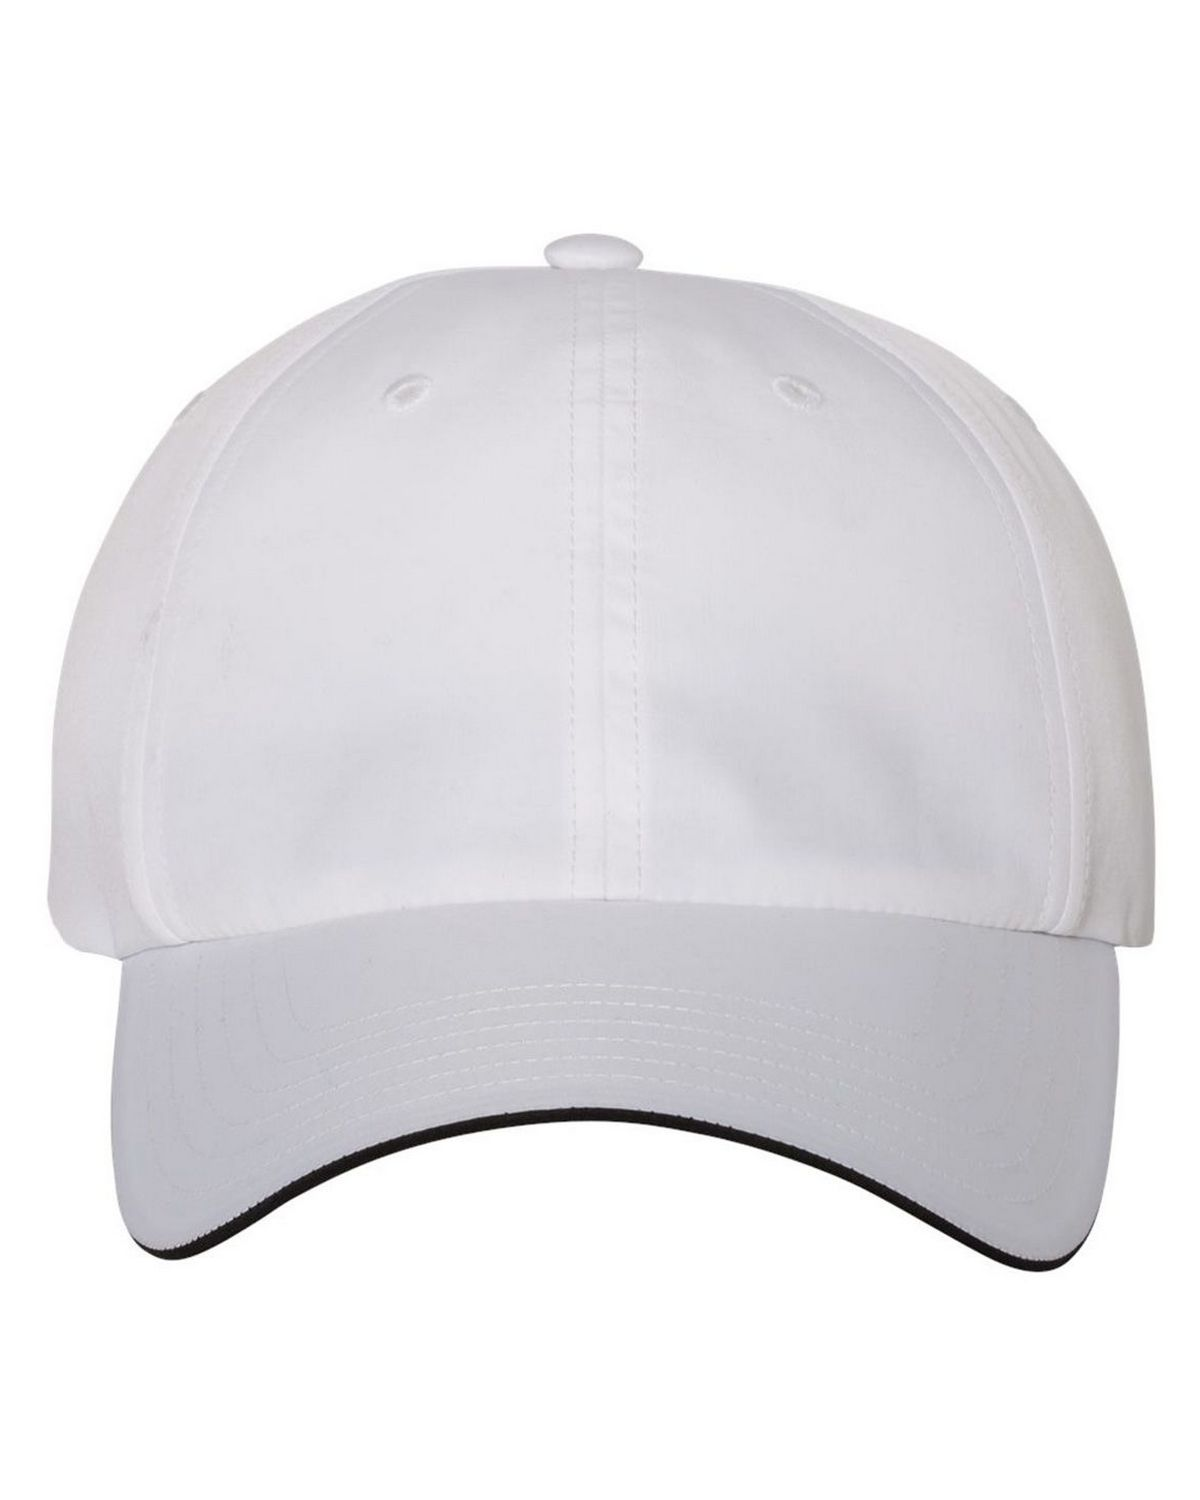 021feb35eee Adidas Golf A605 Performance Relaxed Poly Cap - Free Shipping Available